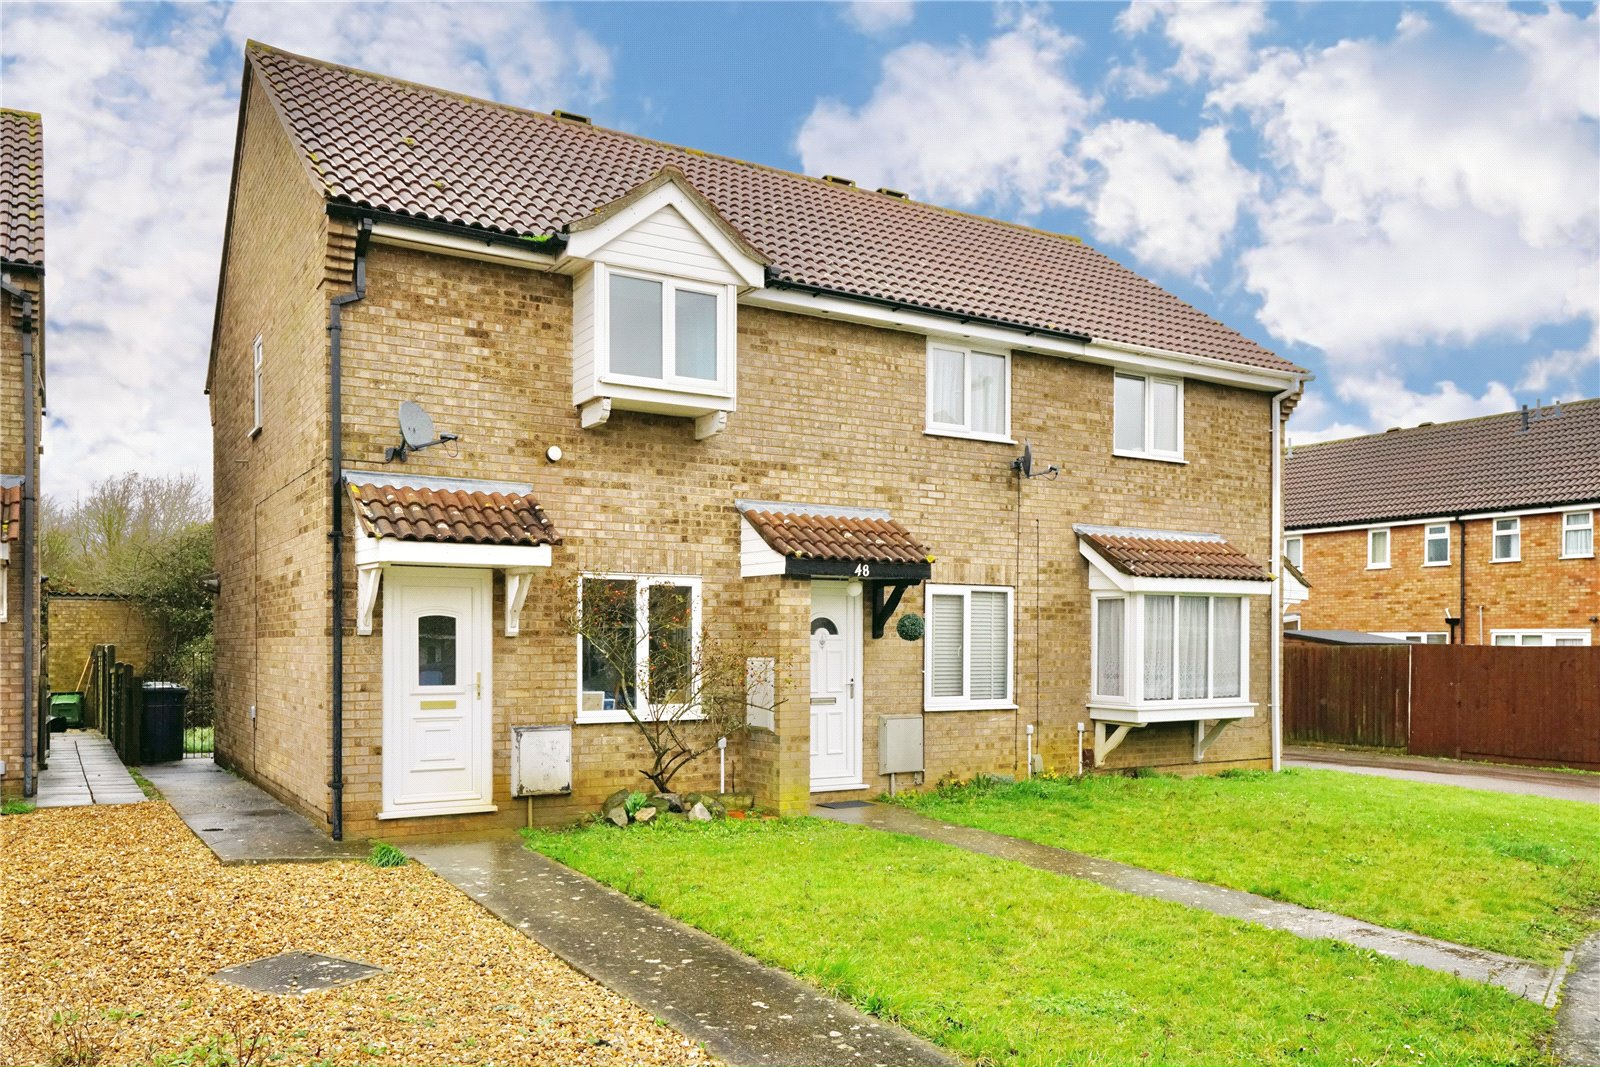 2 bed house for sale in Alder Close, Eaton Ford, PE19